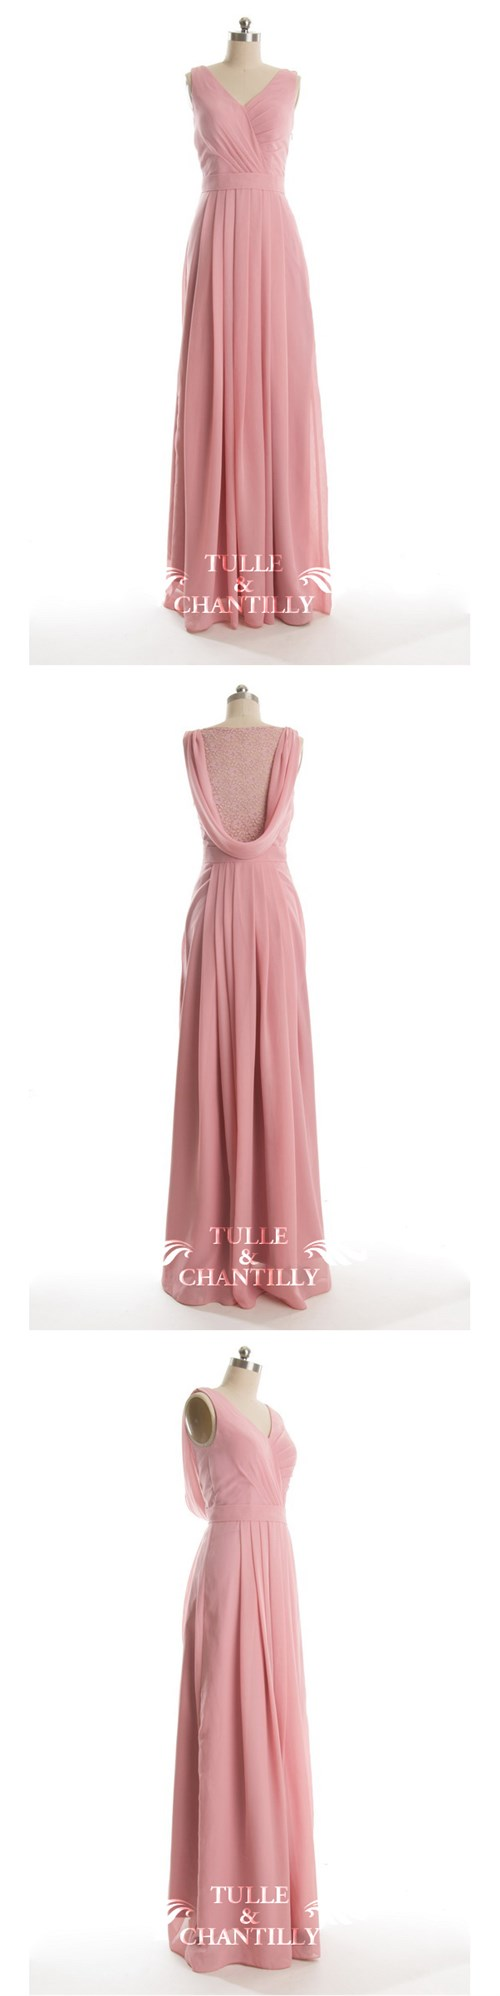 Vintage Long Dusty Pink V-neck Lace Bridesmaid Dress with Illusion ...